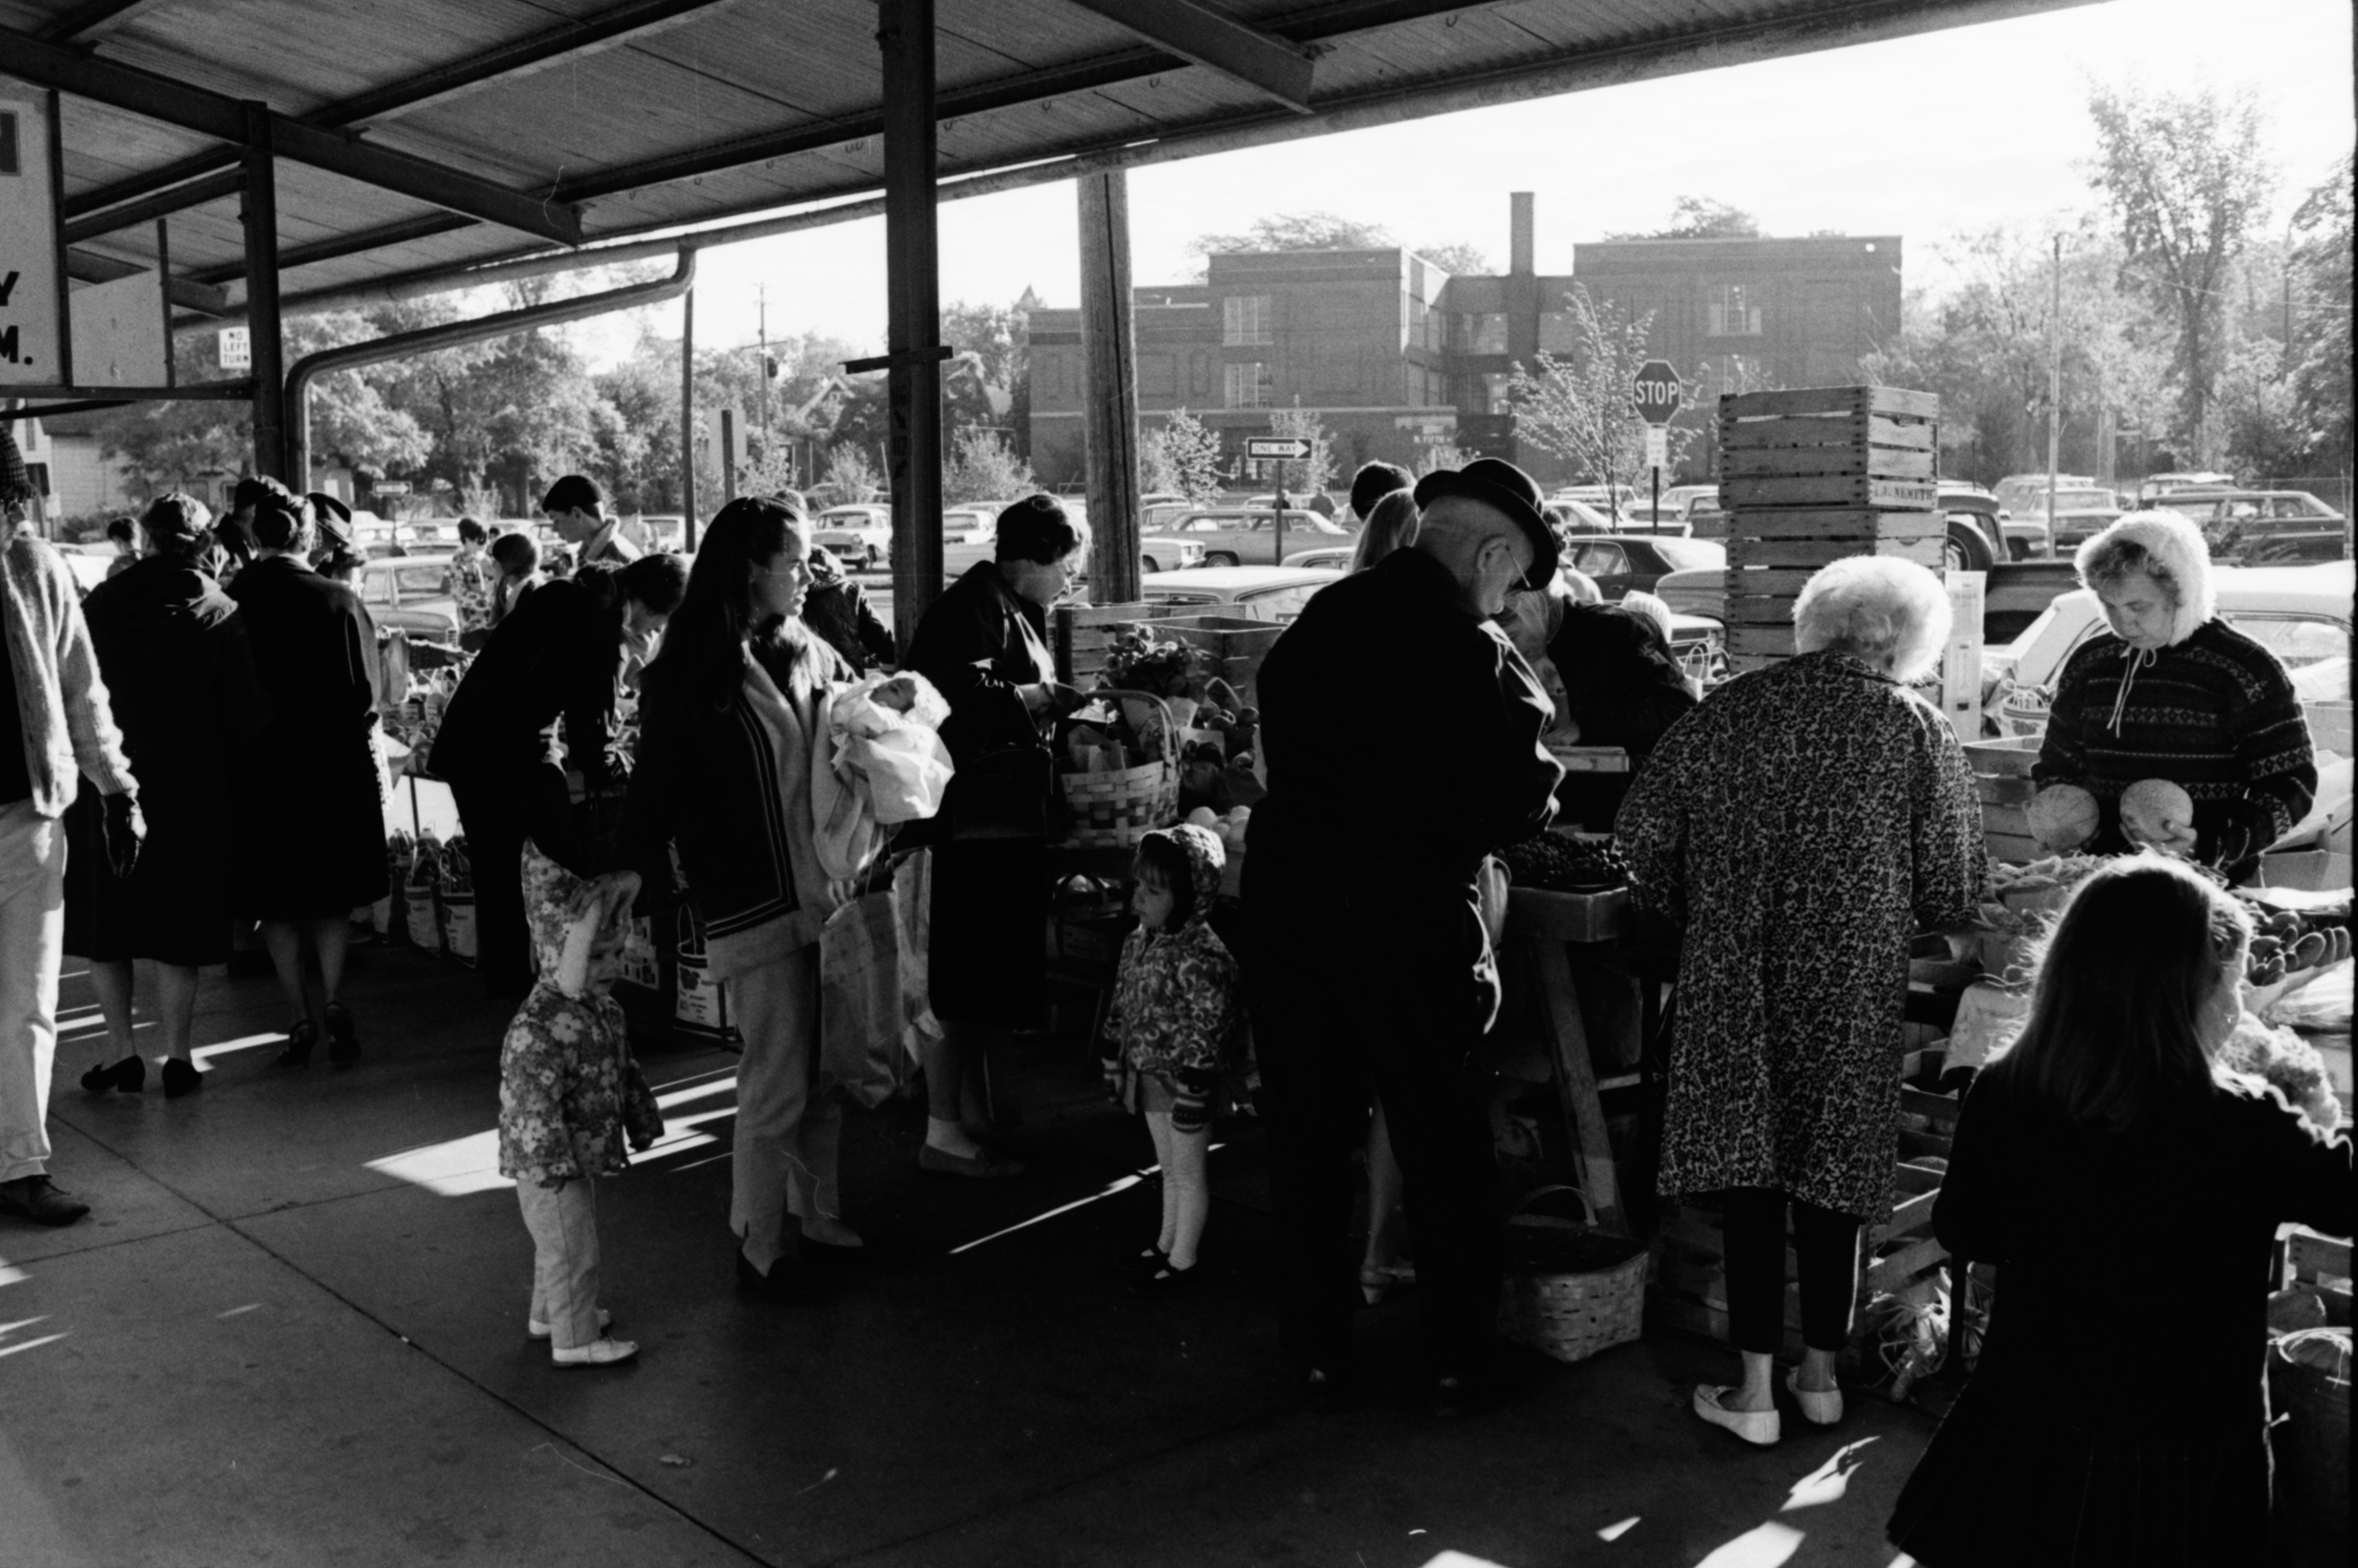 Waiting to Buy at the Ann Arbor Farmers Market, October 1968 image